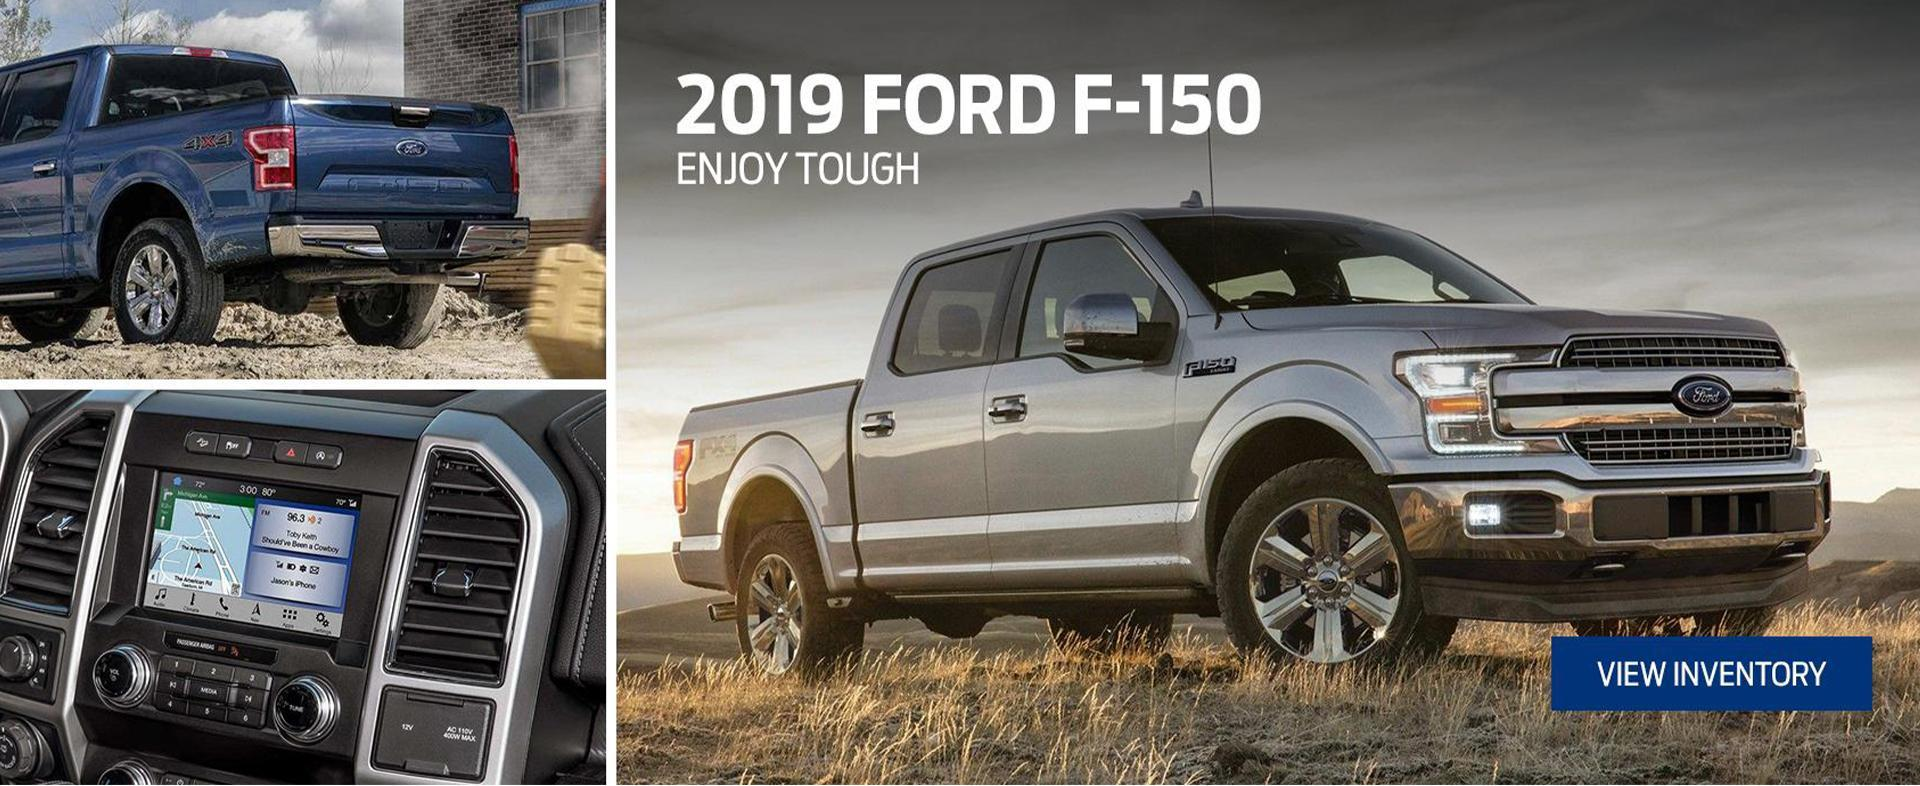 Ford Home 2019 Ford F-150